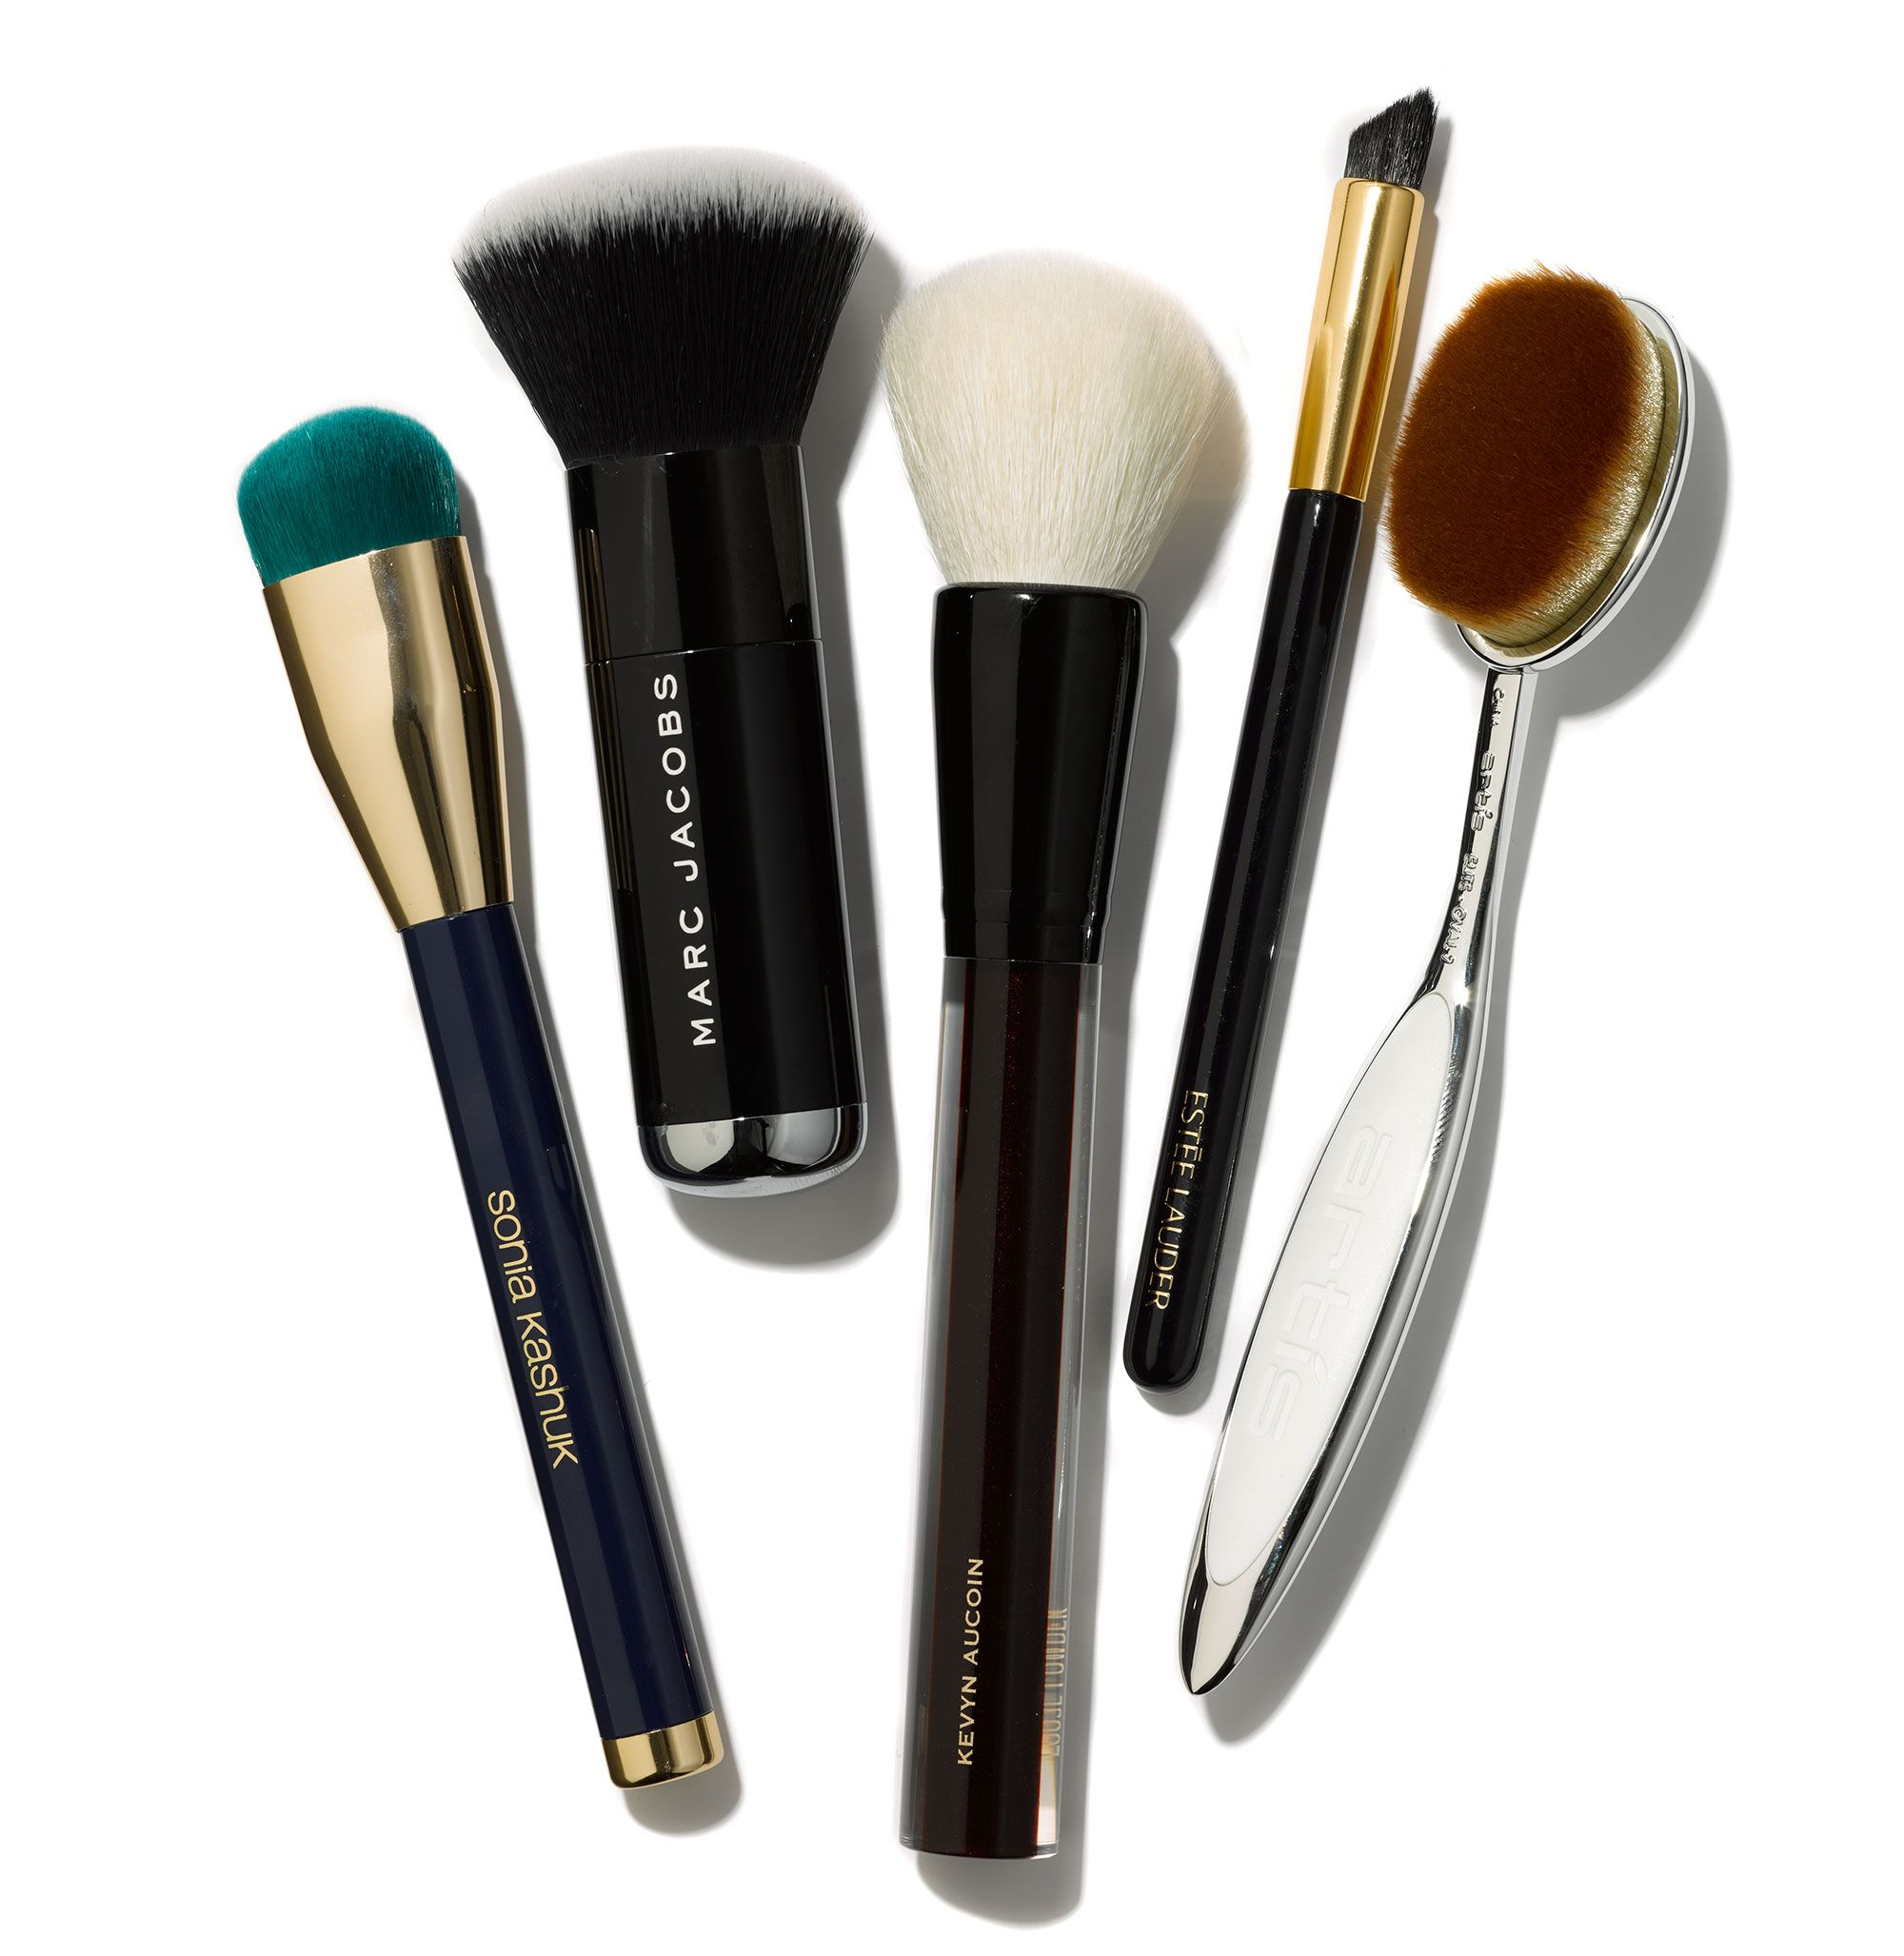 popular makeup brushes - Google zoeken | Make-up | Pinterest ...